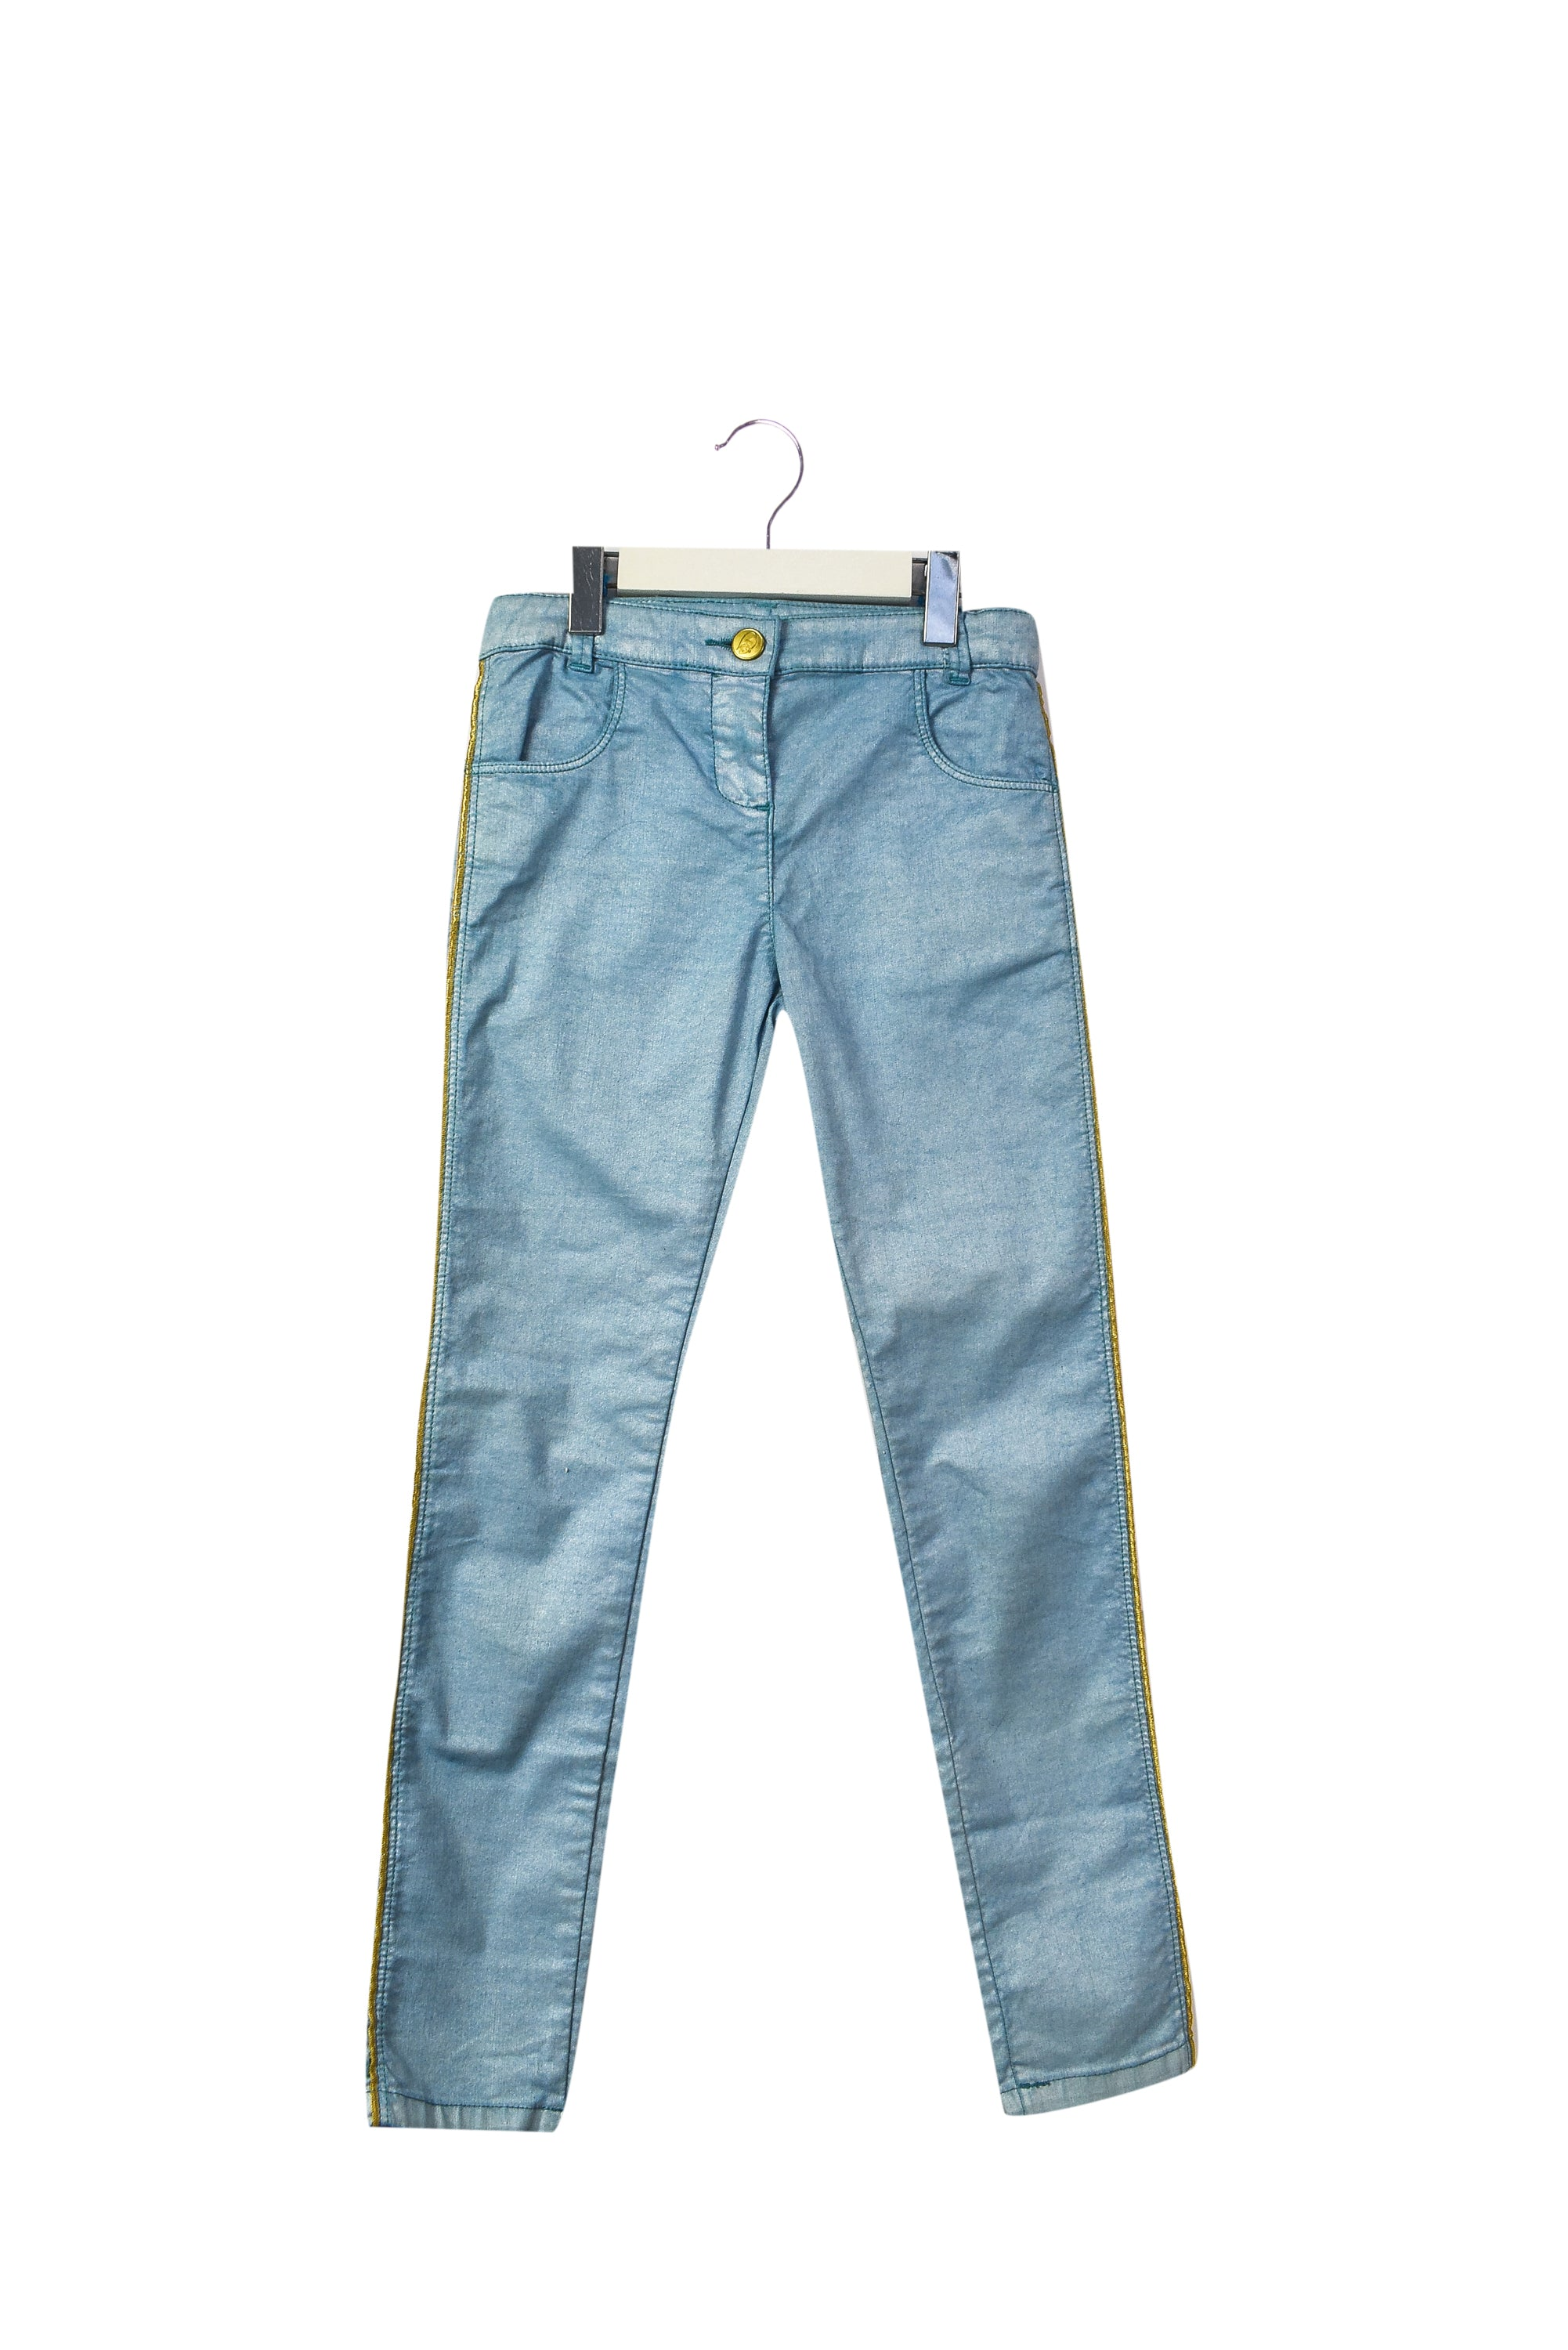 10043900 Little Marc Jacobs Kids~Jeans 8 at Retykle